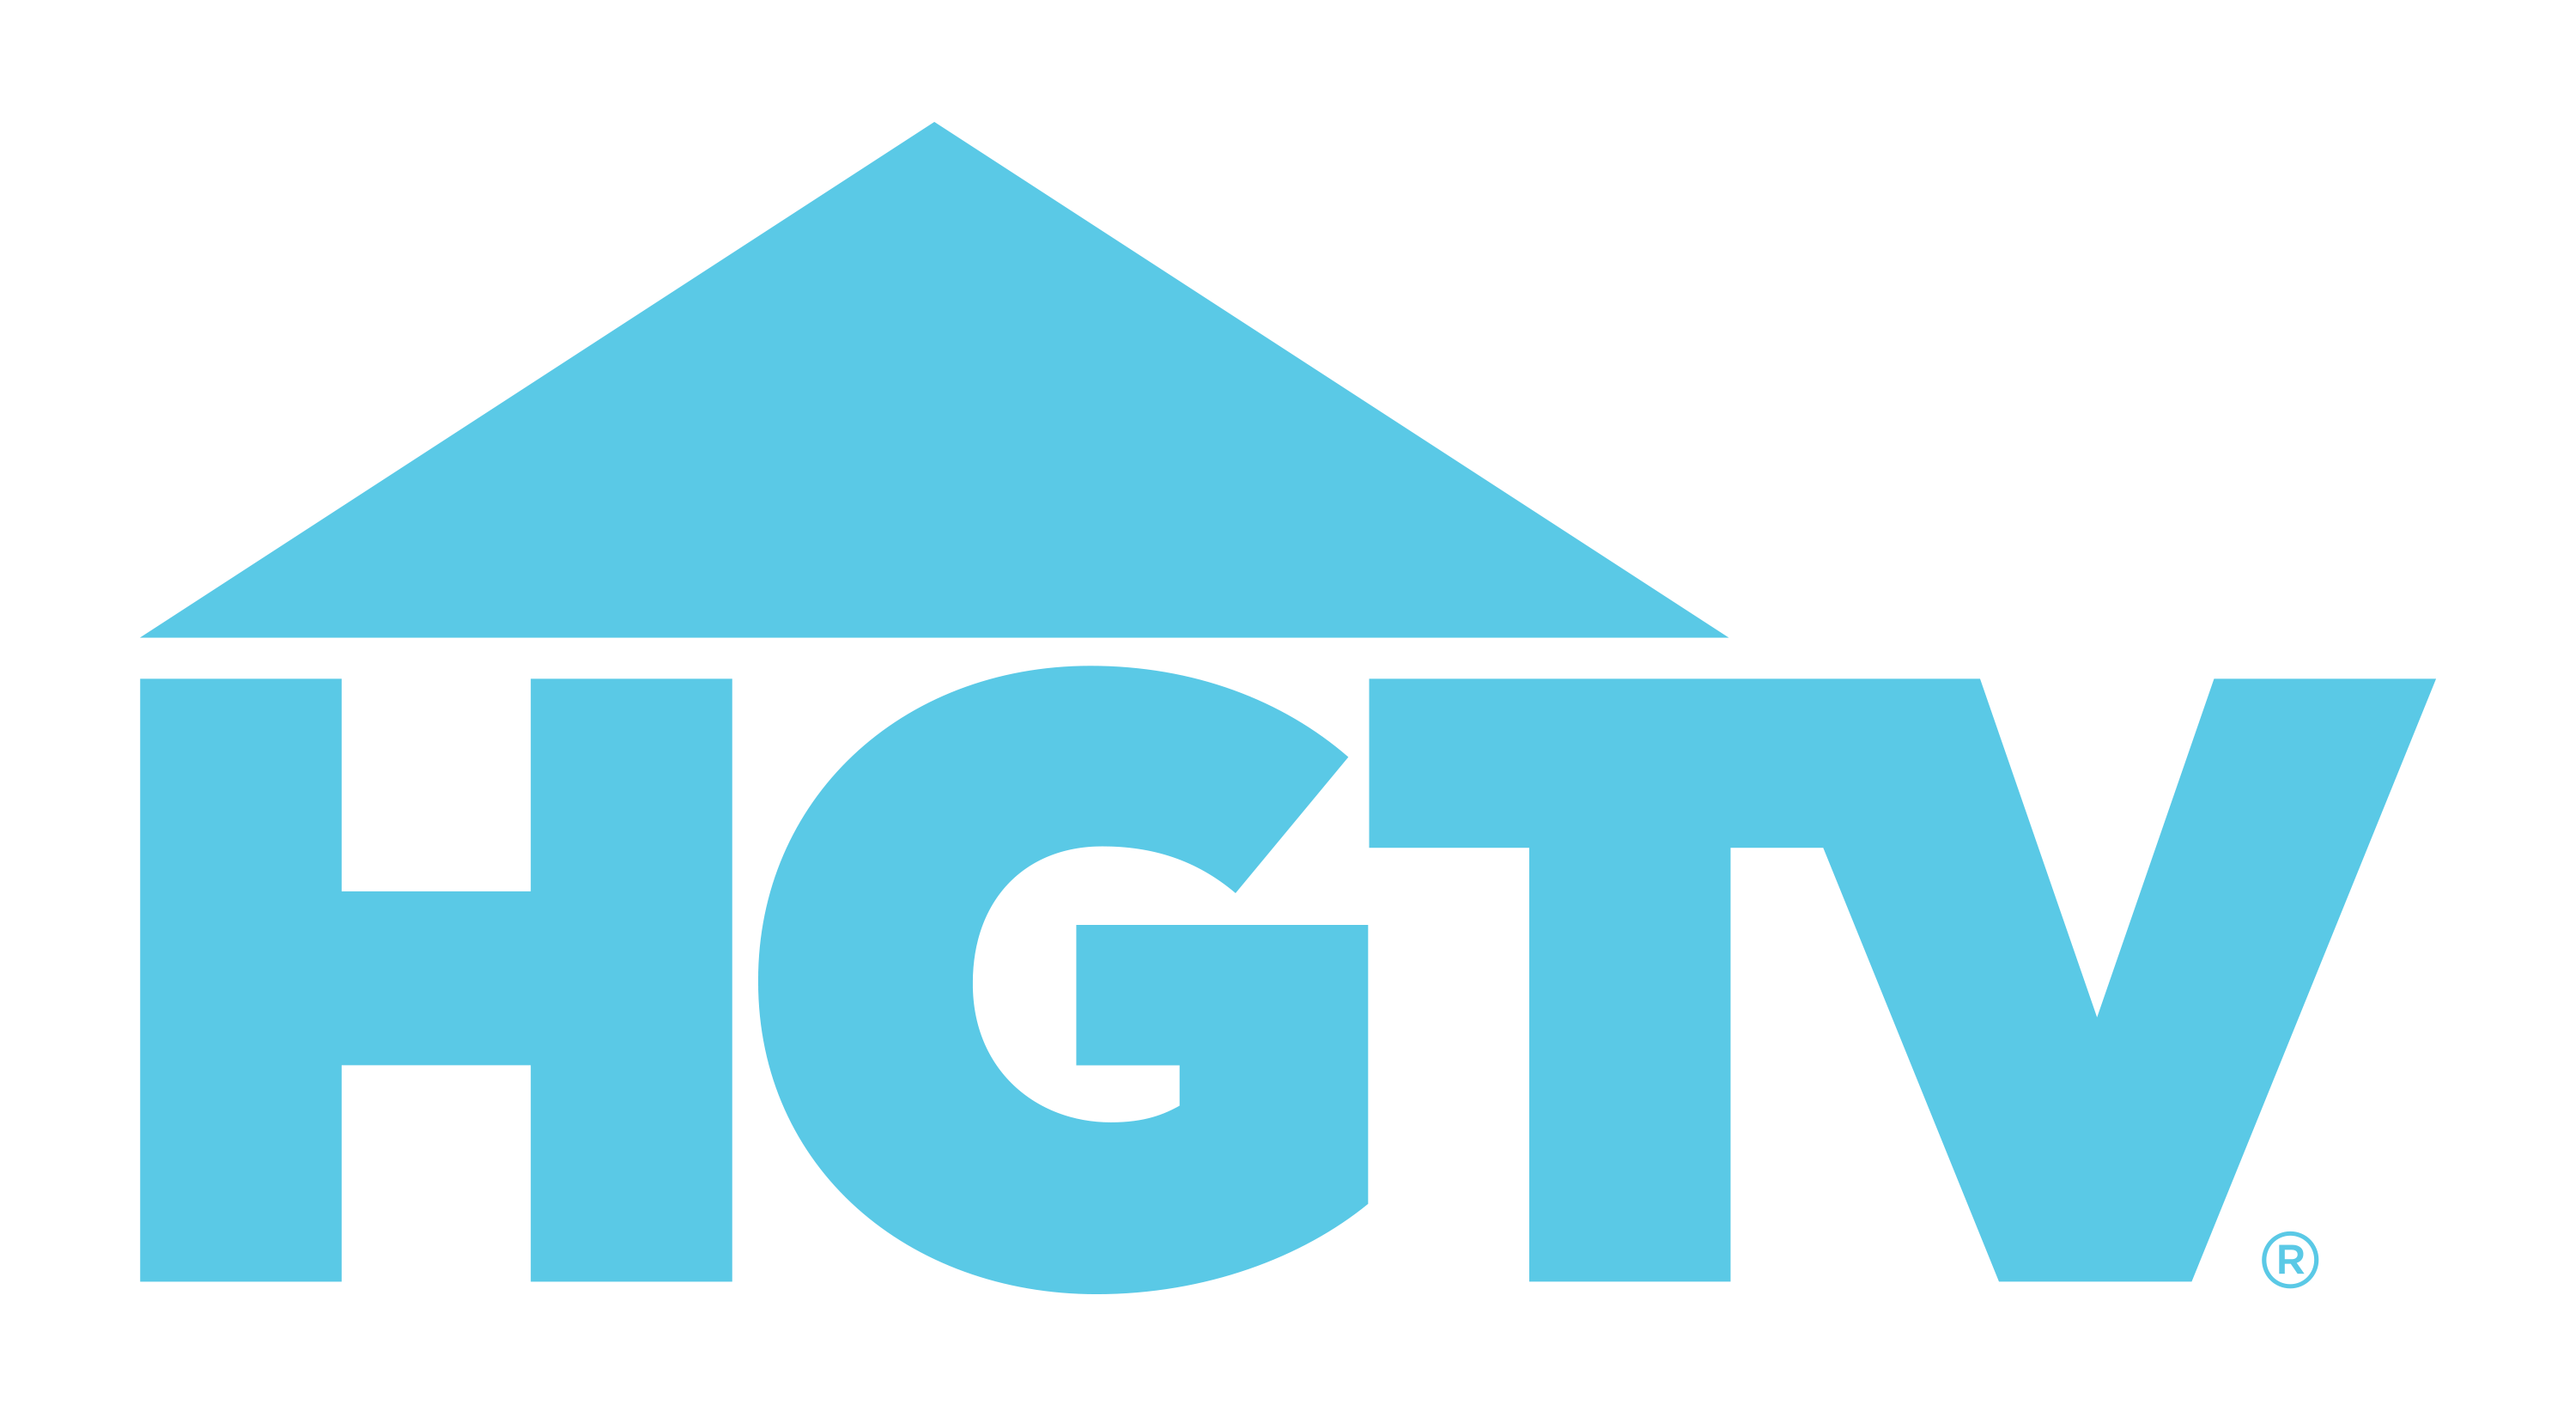 HGTV Help Center home page